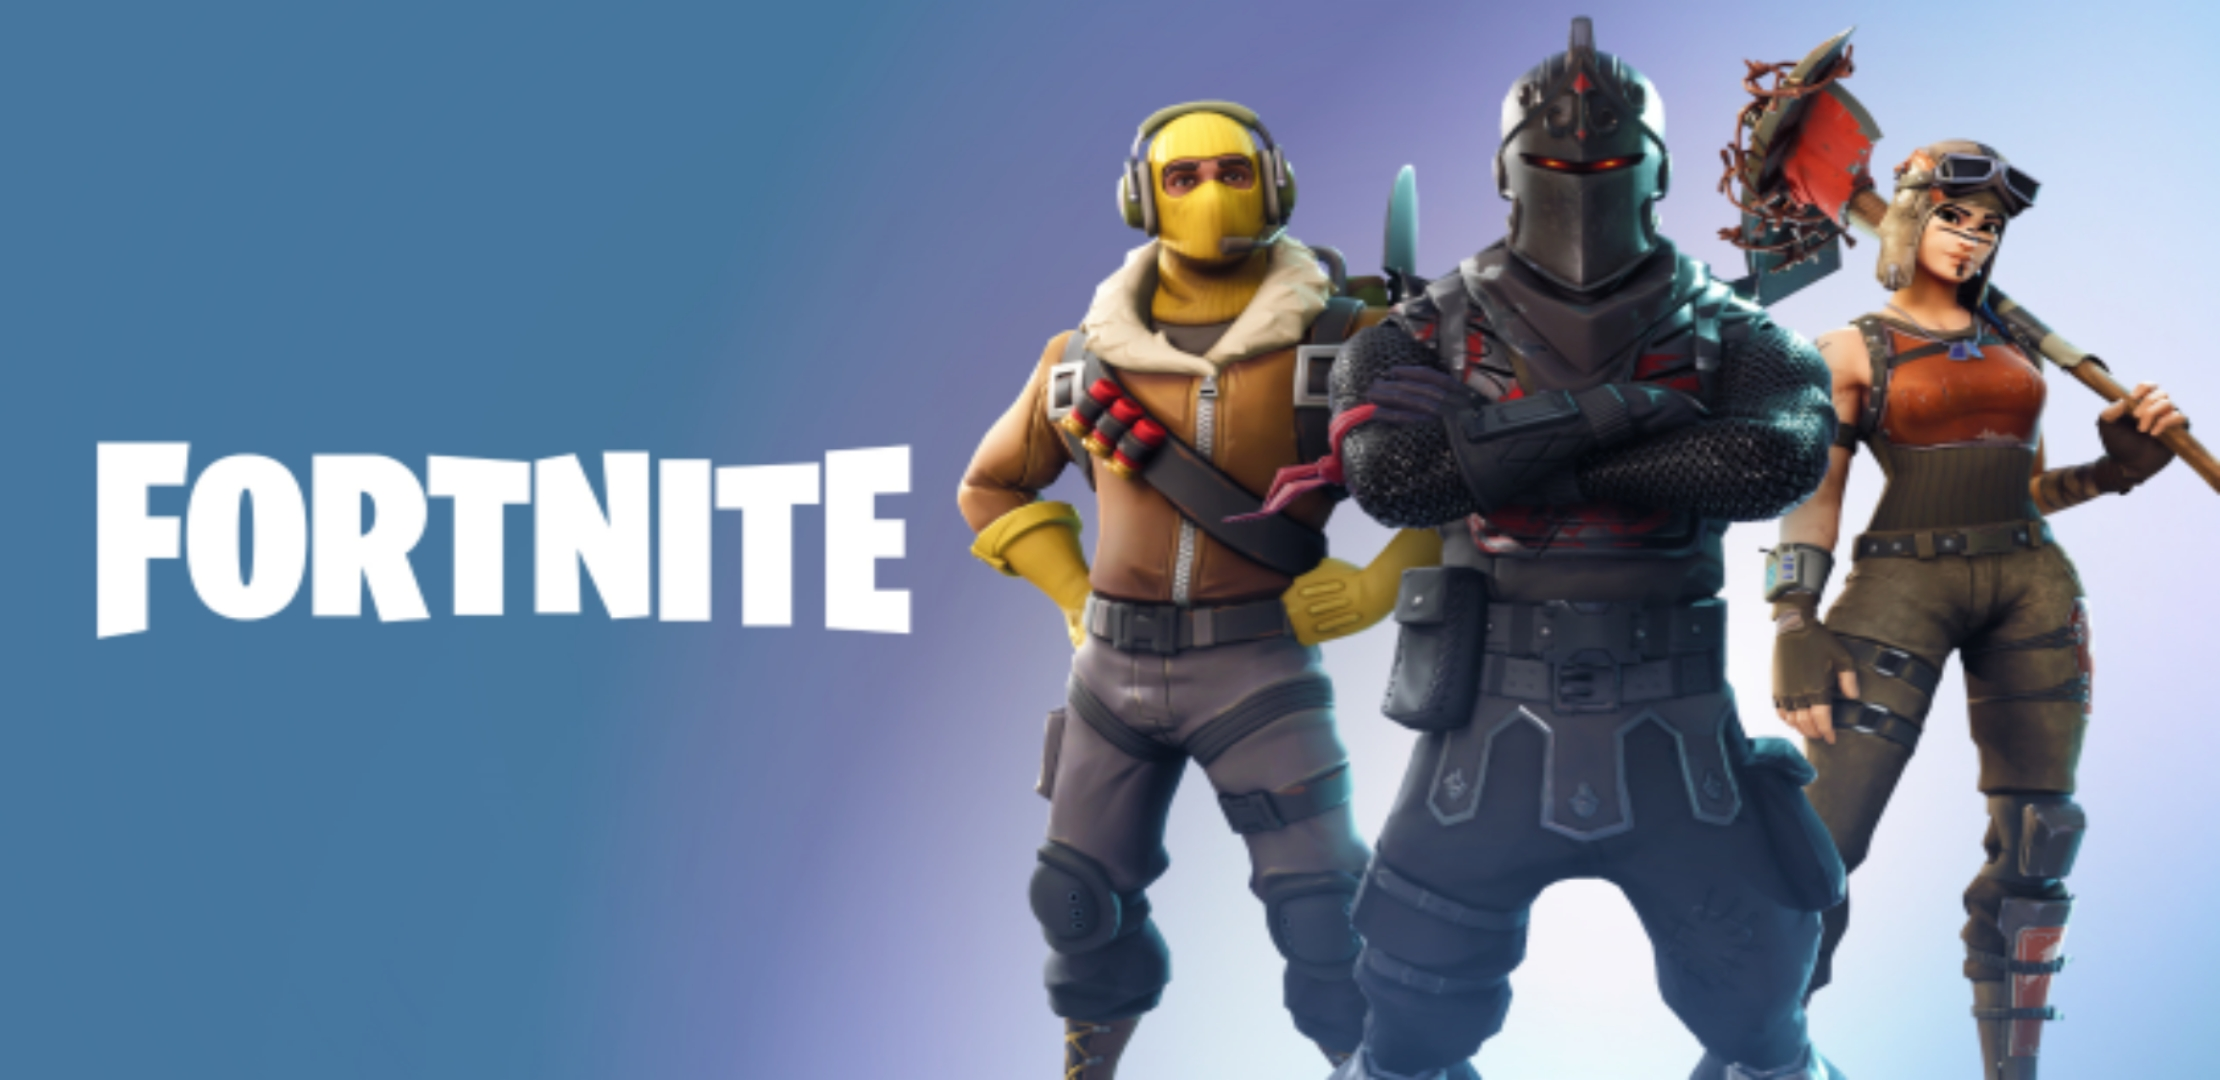 fortnite apk download android 2018